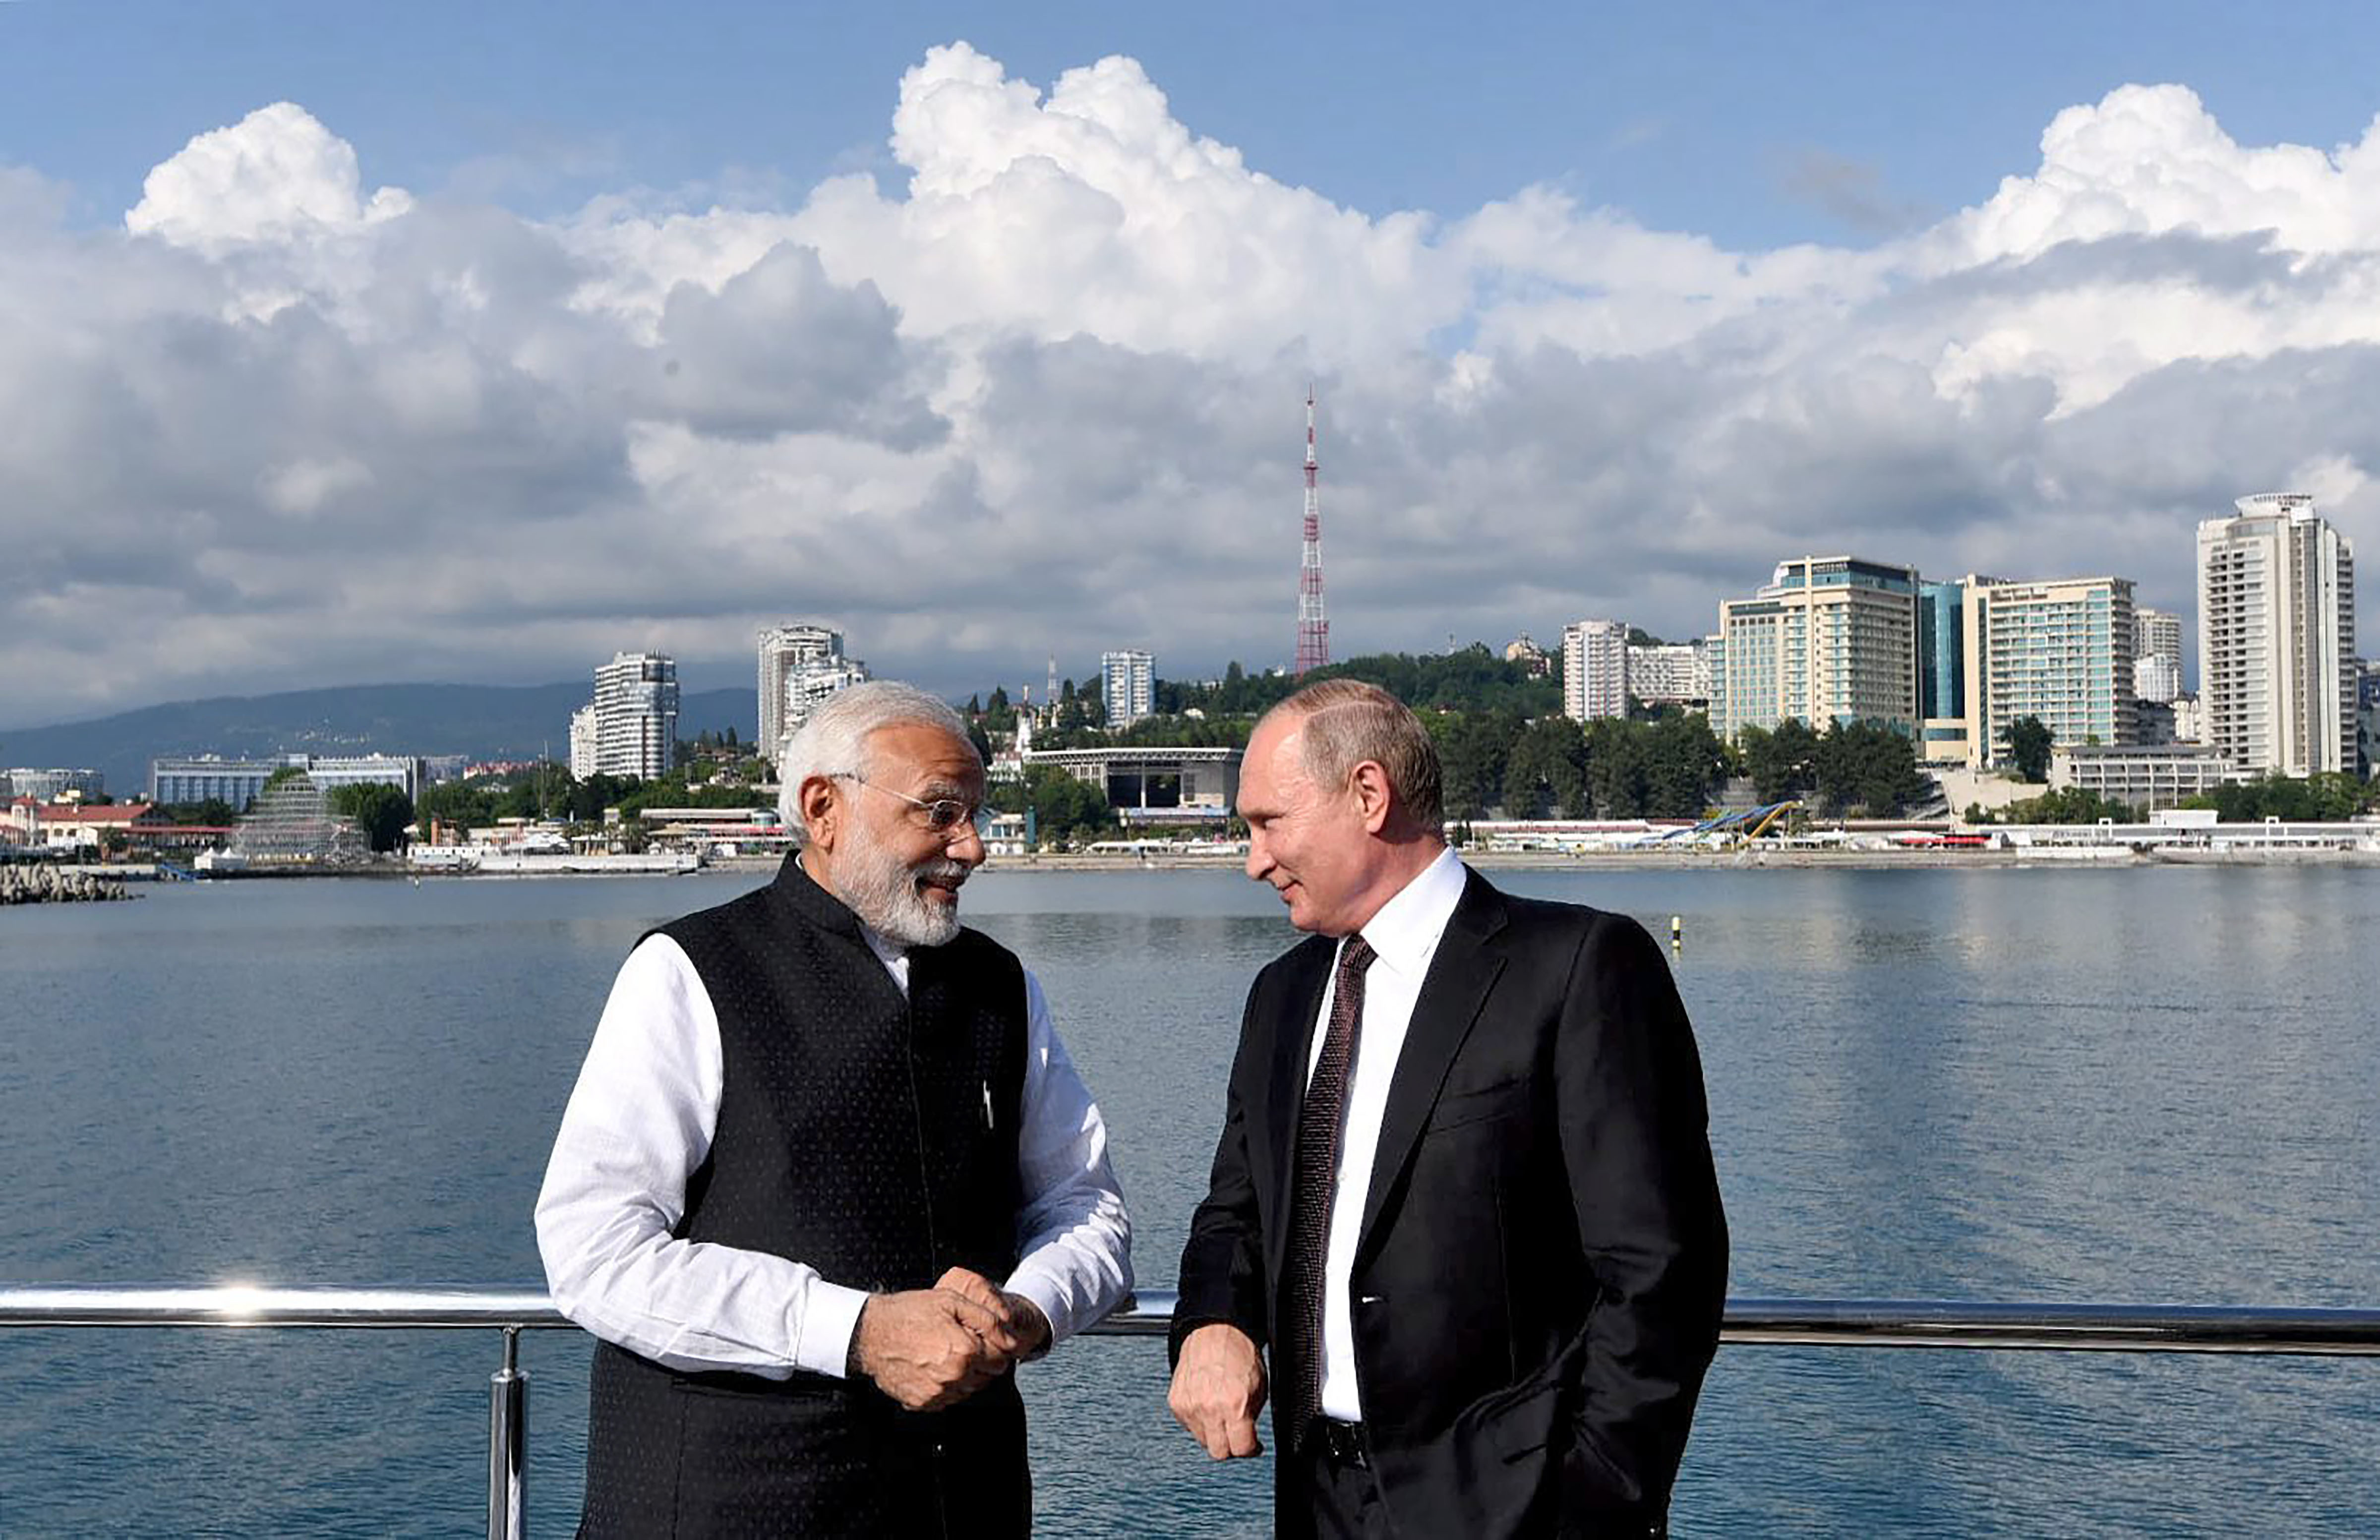 At Sochi, Modi, Putin Hold 'Intense' Talks and Cement 'Special Privileged' Ties